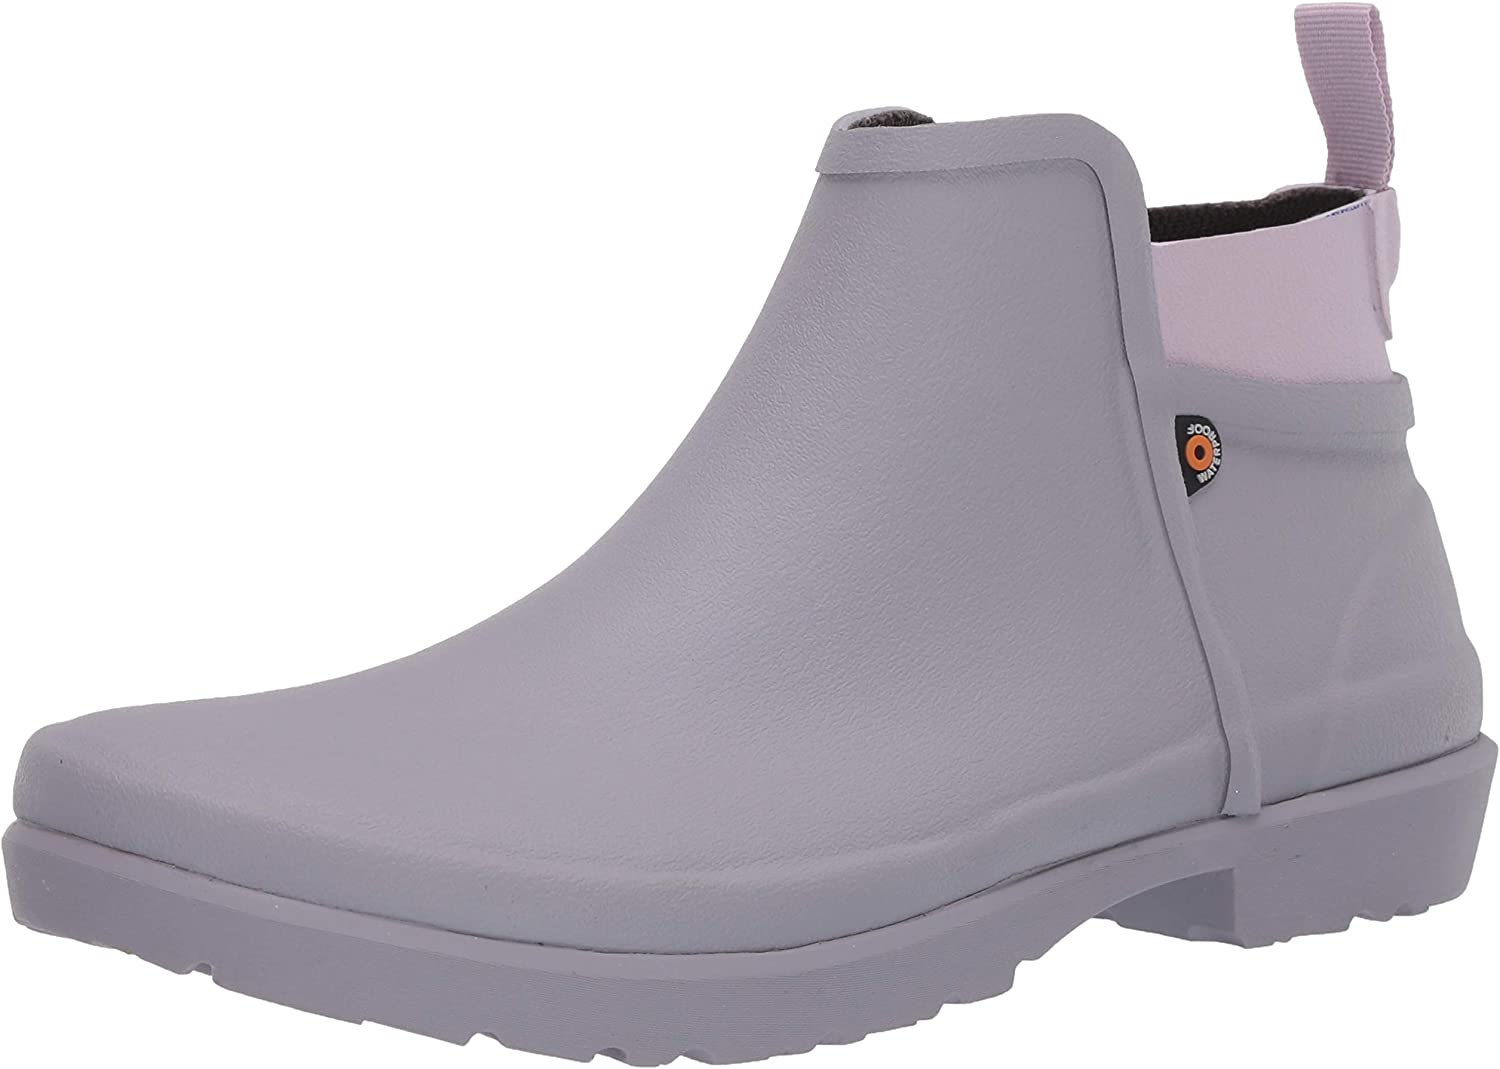 Flora Bootie Low Height Waterproof Slip On